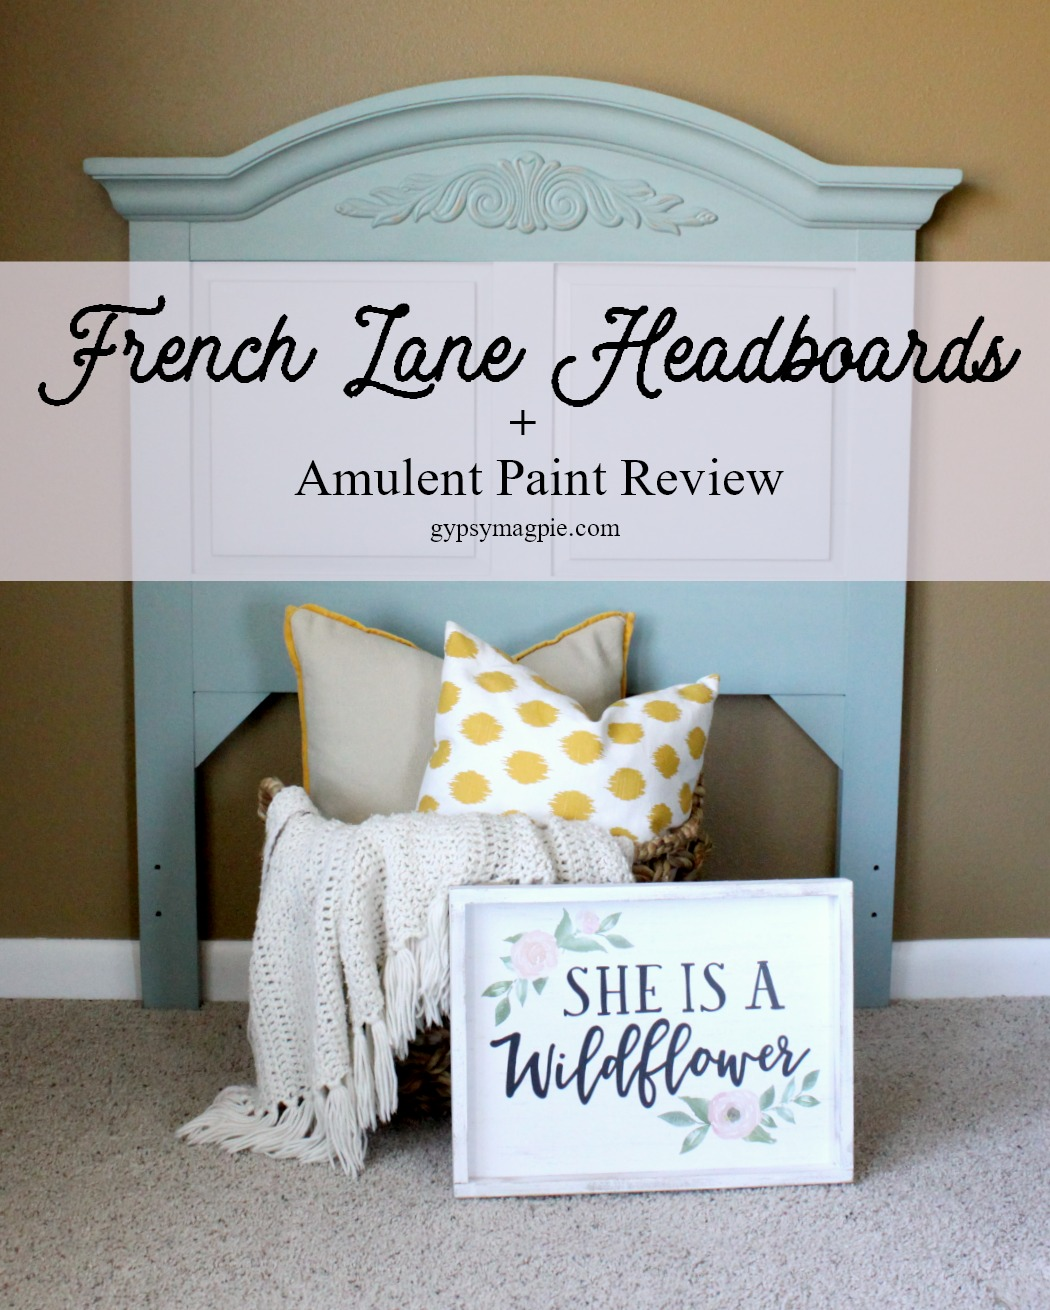 French Lane headboards plus Amulent Paint review | Gypsy Magpie